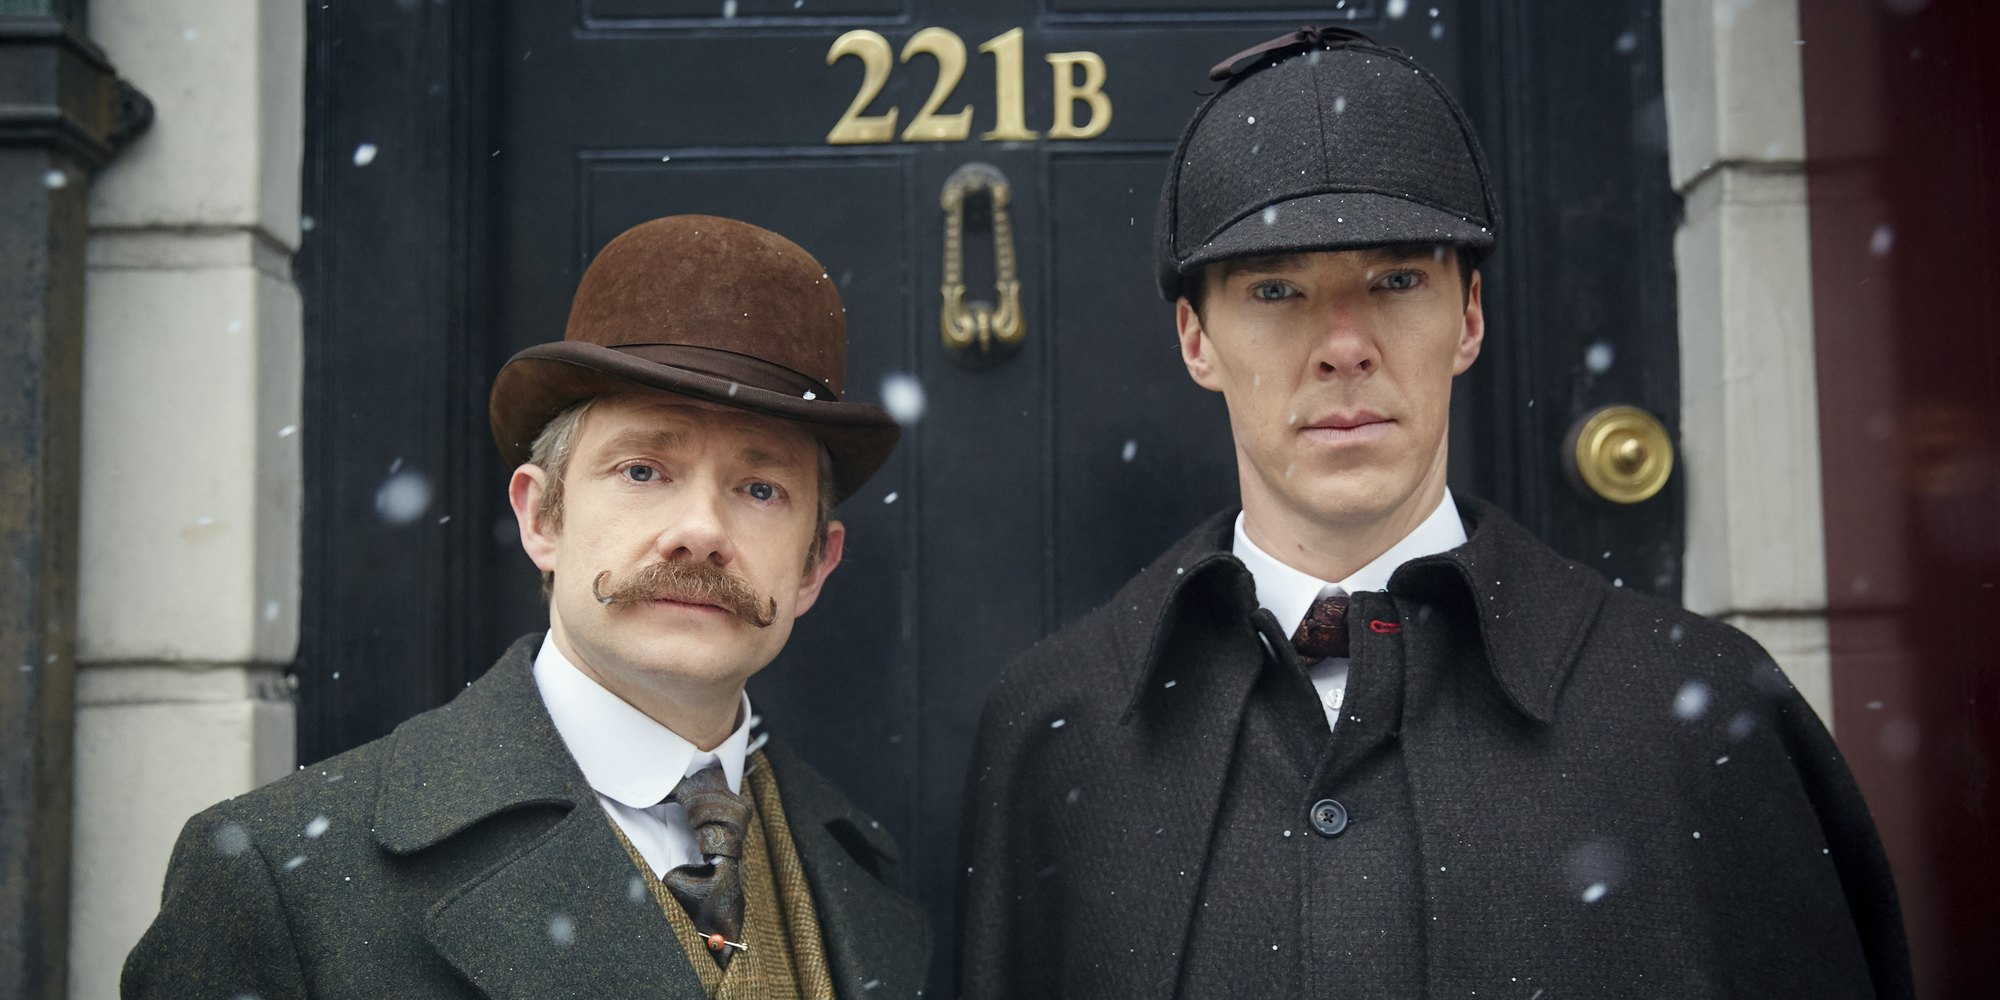 /images/upload/blog/1577/1577_sherlock_and_watson.jpg